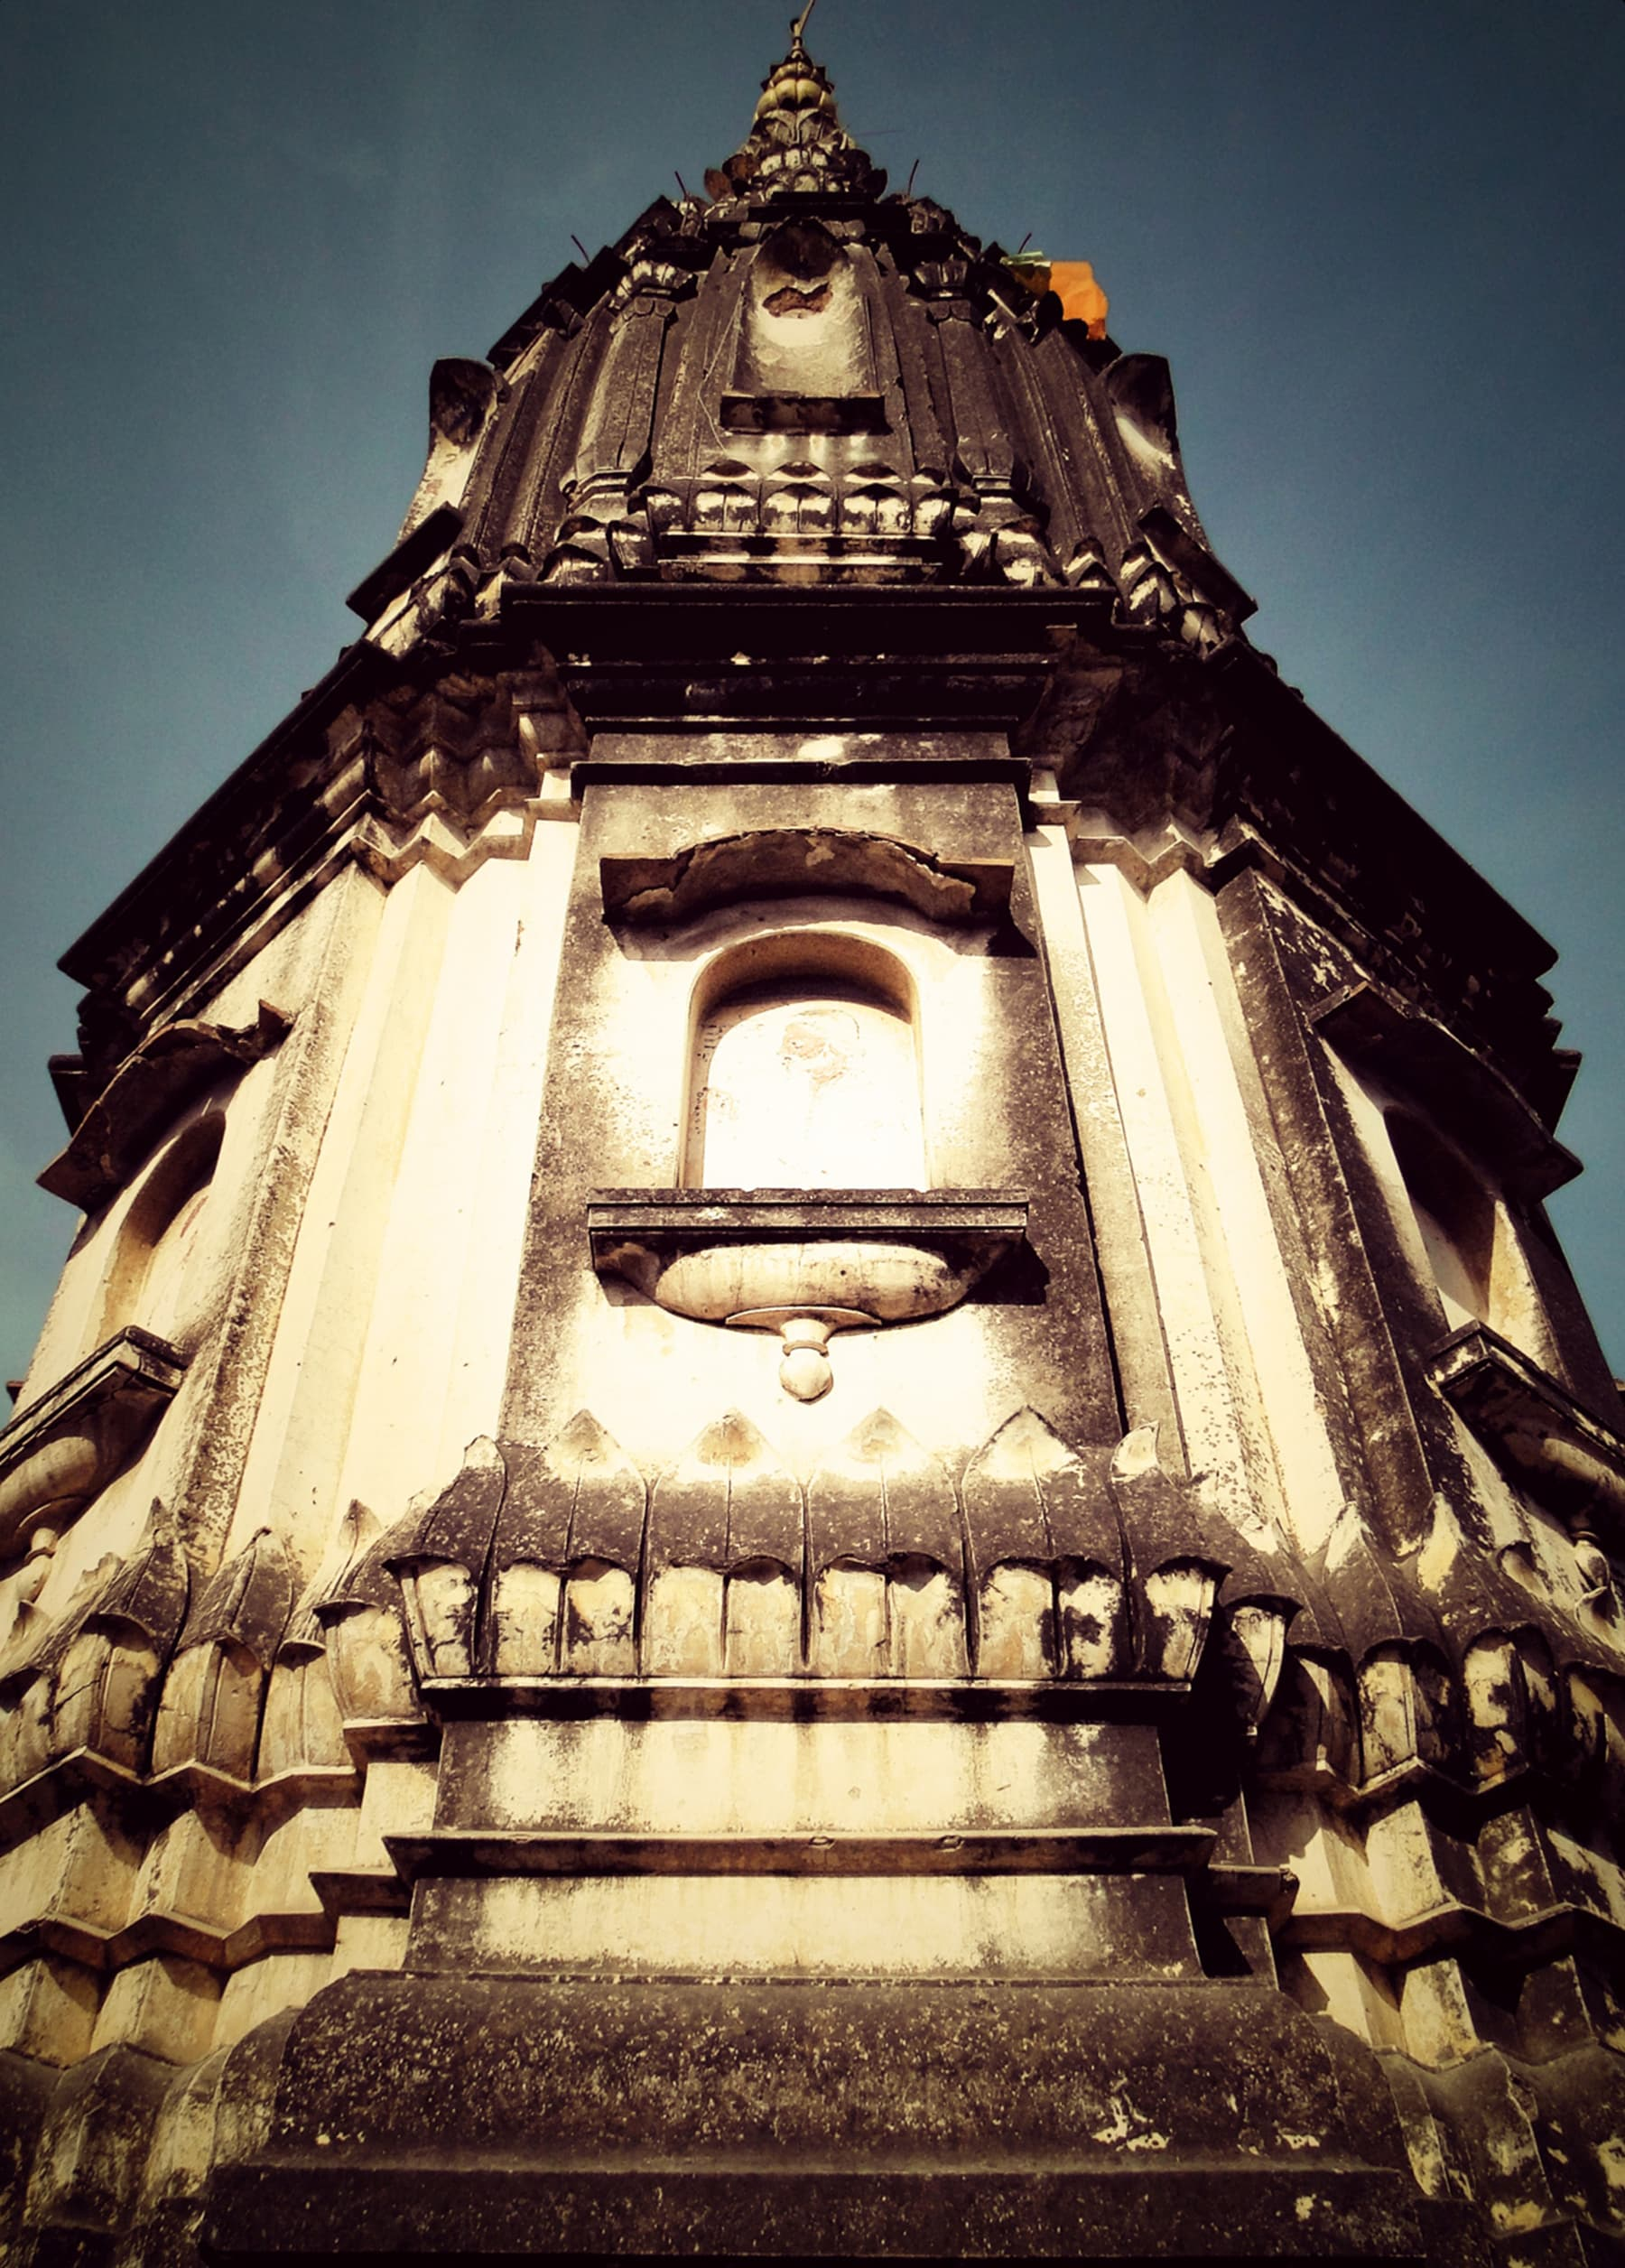 A worm's eye view of a mandir in Old Rawalpindi. —Sultan Ali